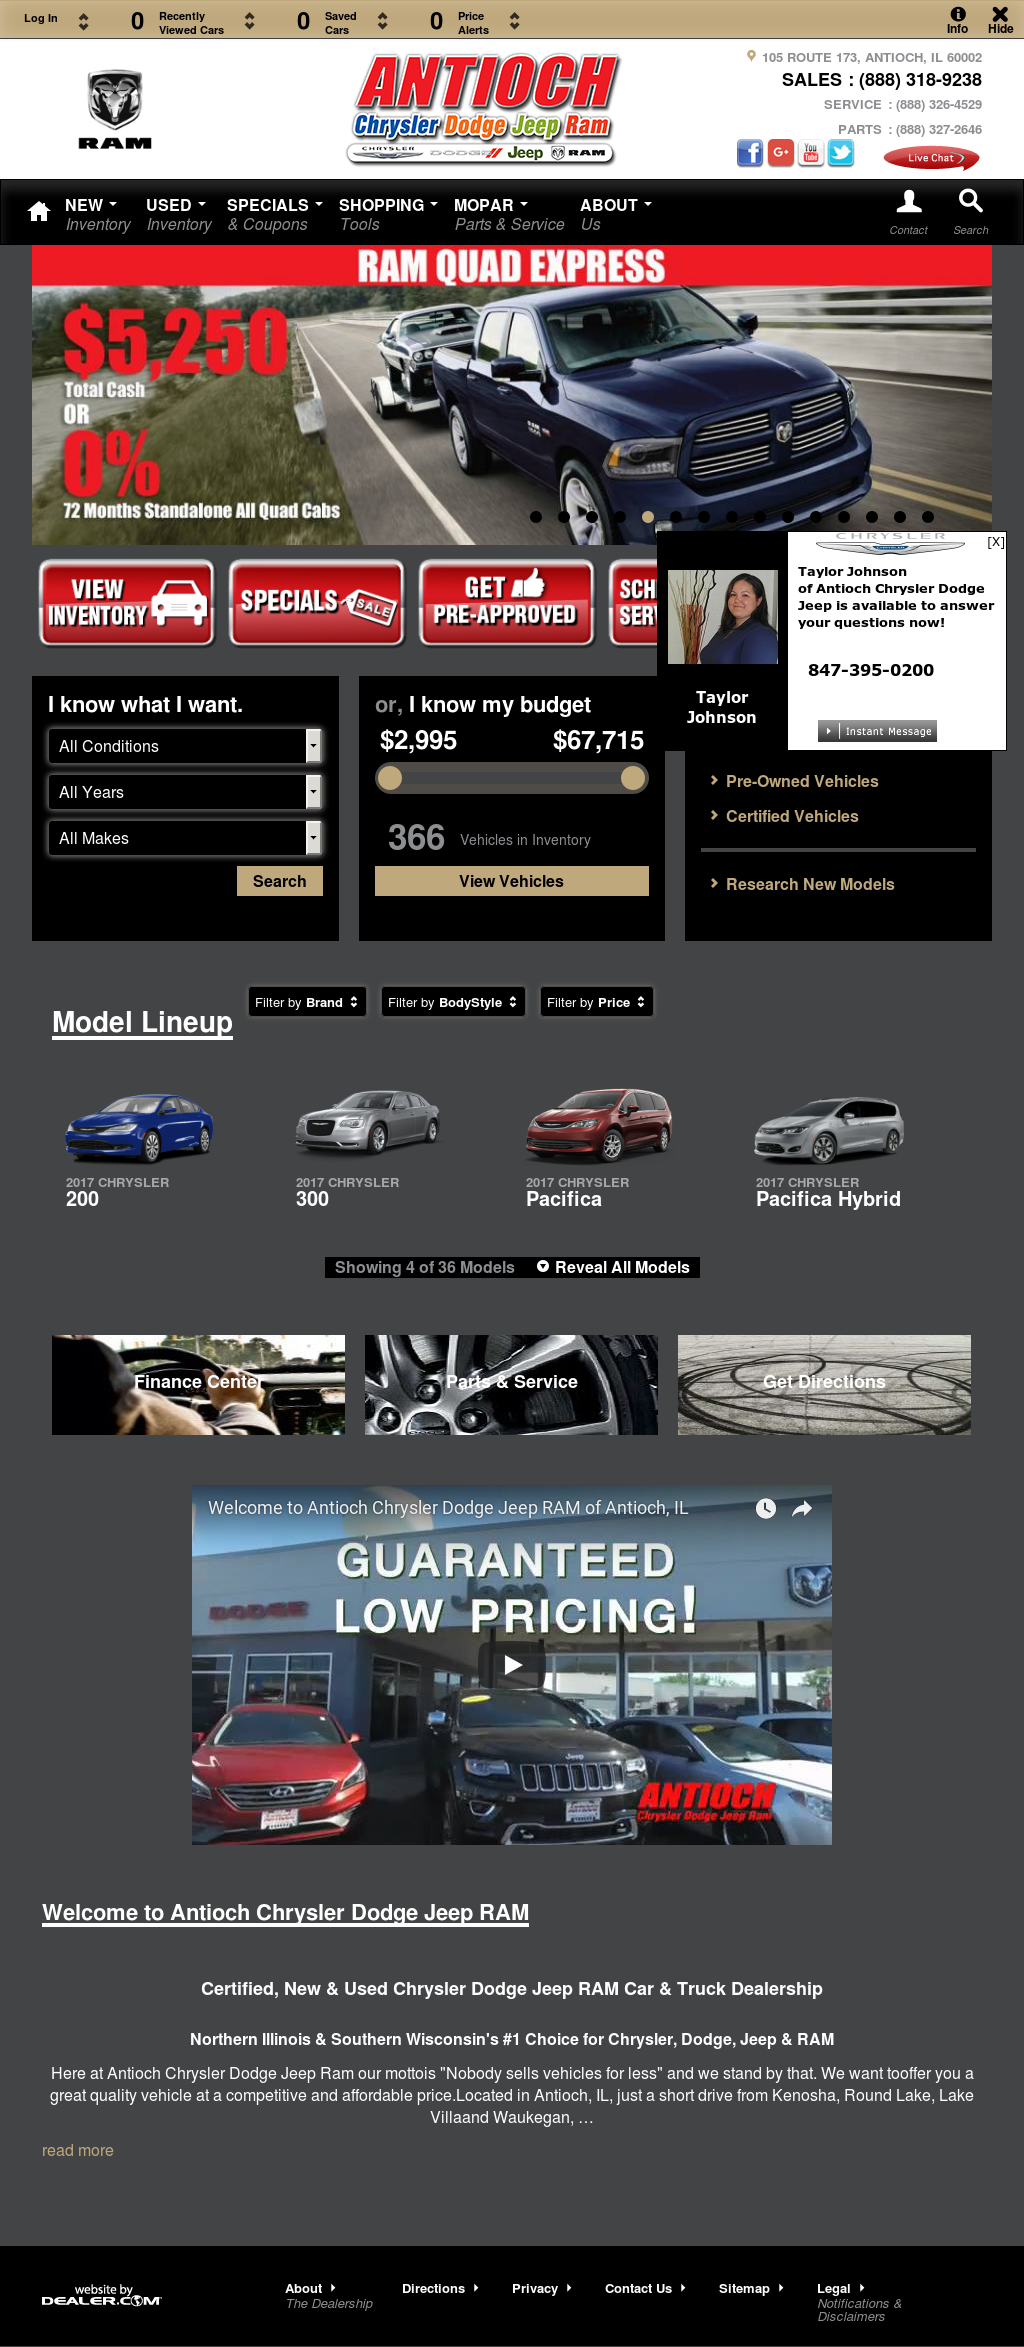 Antioch Chrysler Dodge Jeep U0026 Ramu0027s Website Screenshot On ...